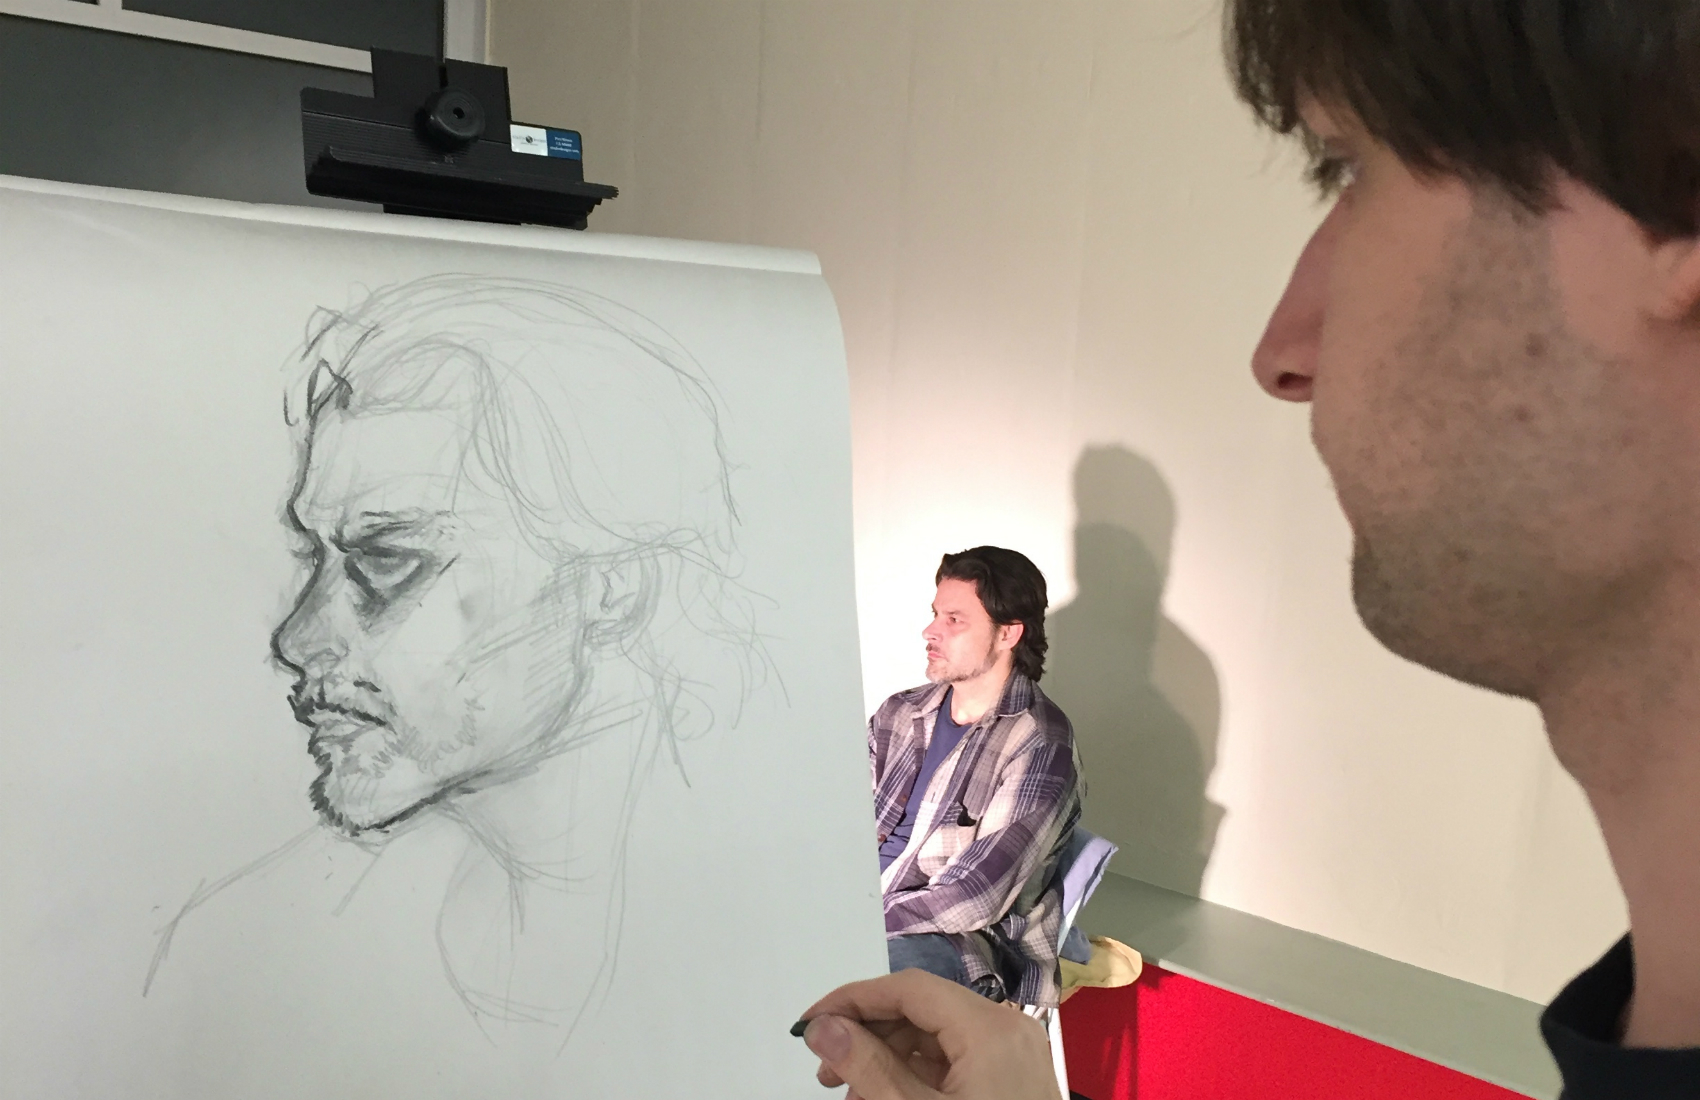 Student Ben Goodwin sketches model Ernesto Brosa in the author's figure-drawing class, taught through Harvard University's Office for the Arts. (Heddi Vaughan Siebel/Courtesy)